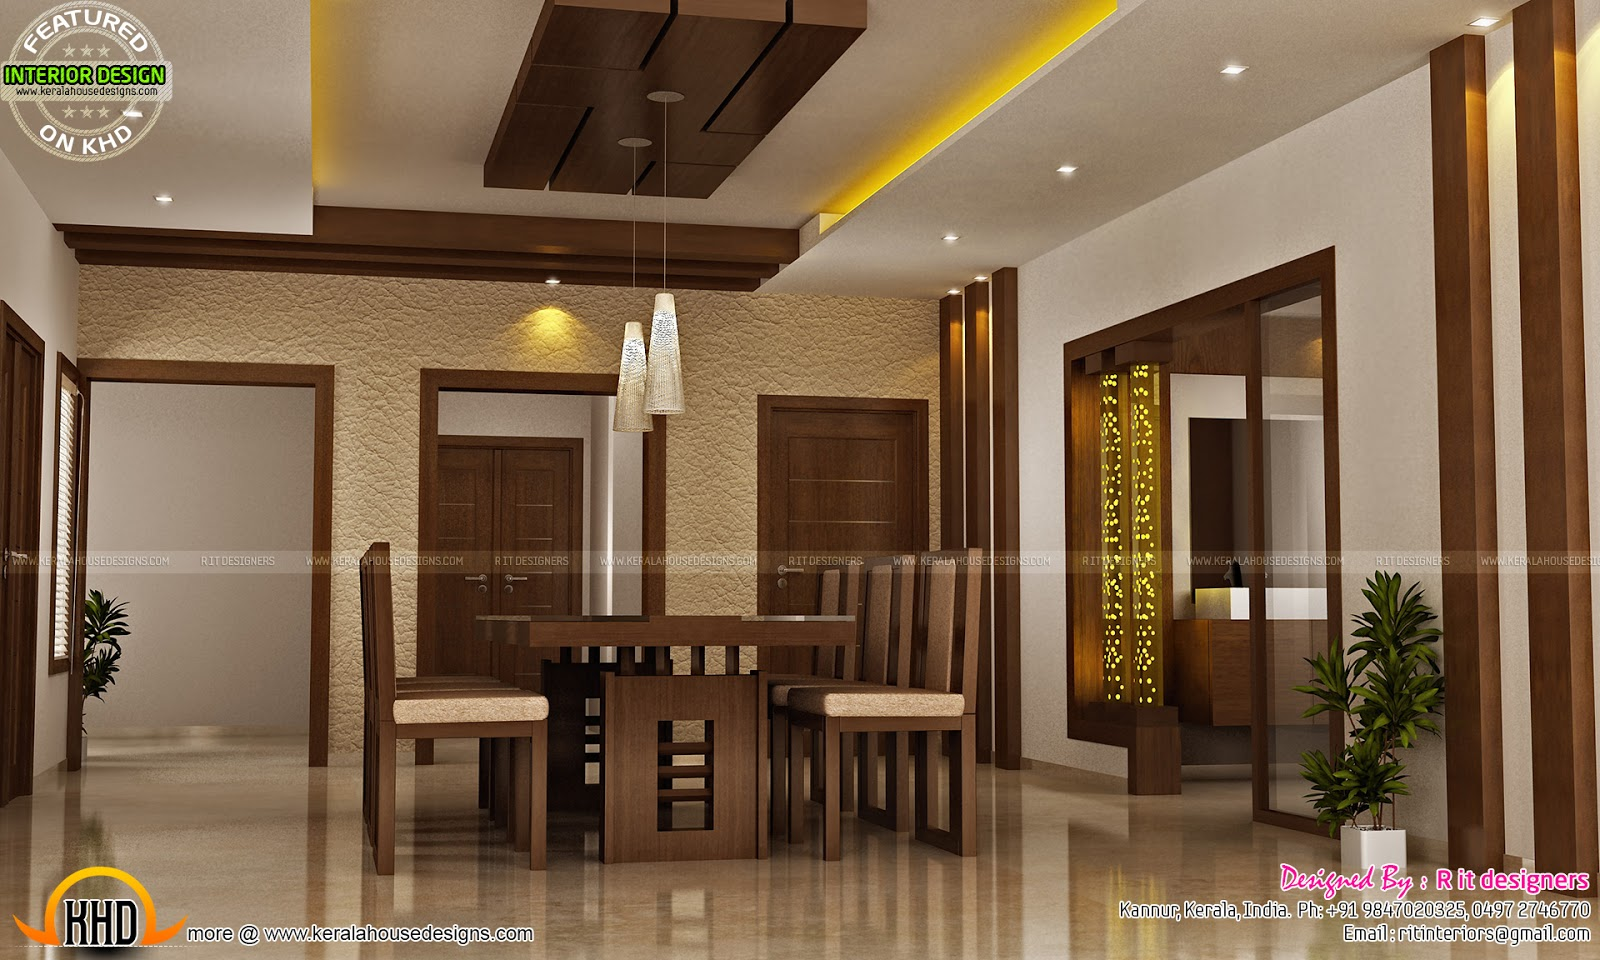 Modular kitchen bedroom teen bedroom and dining interior for House interior design kerala photos